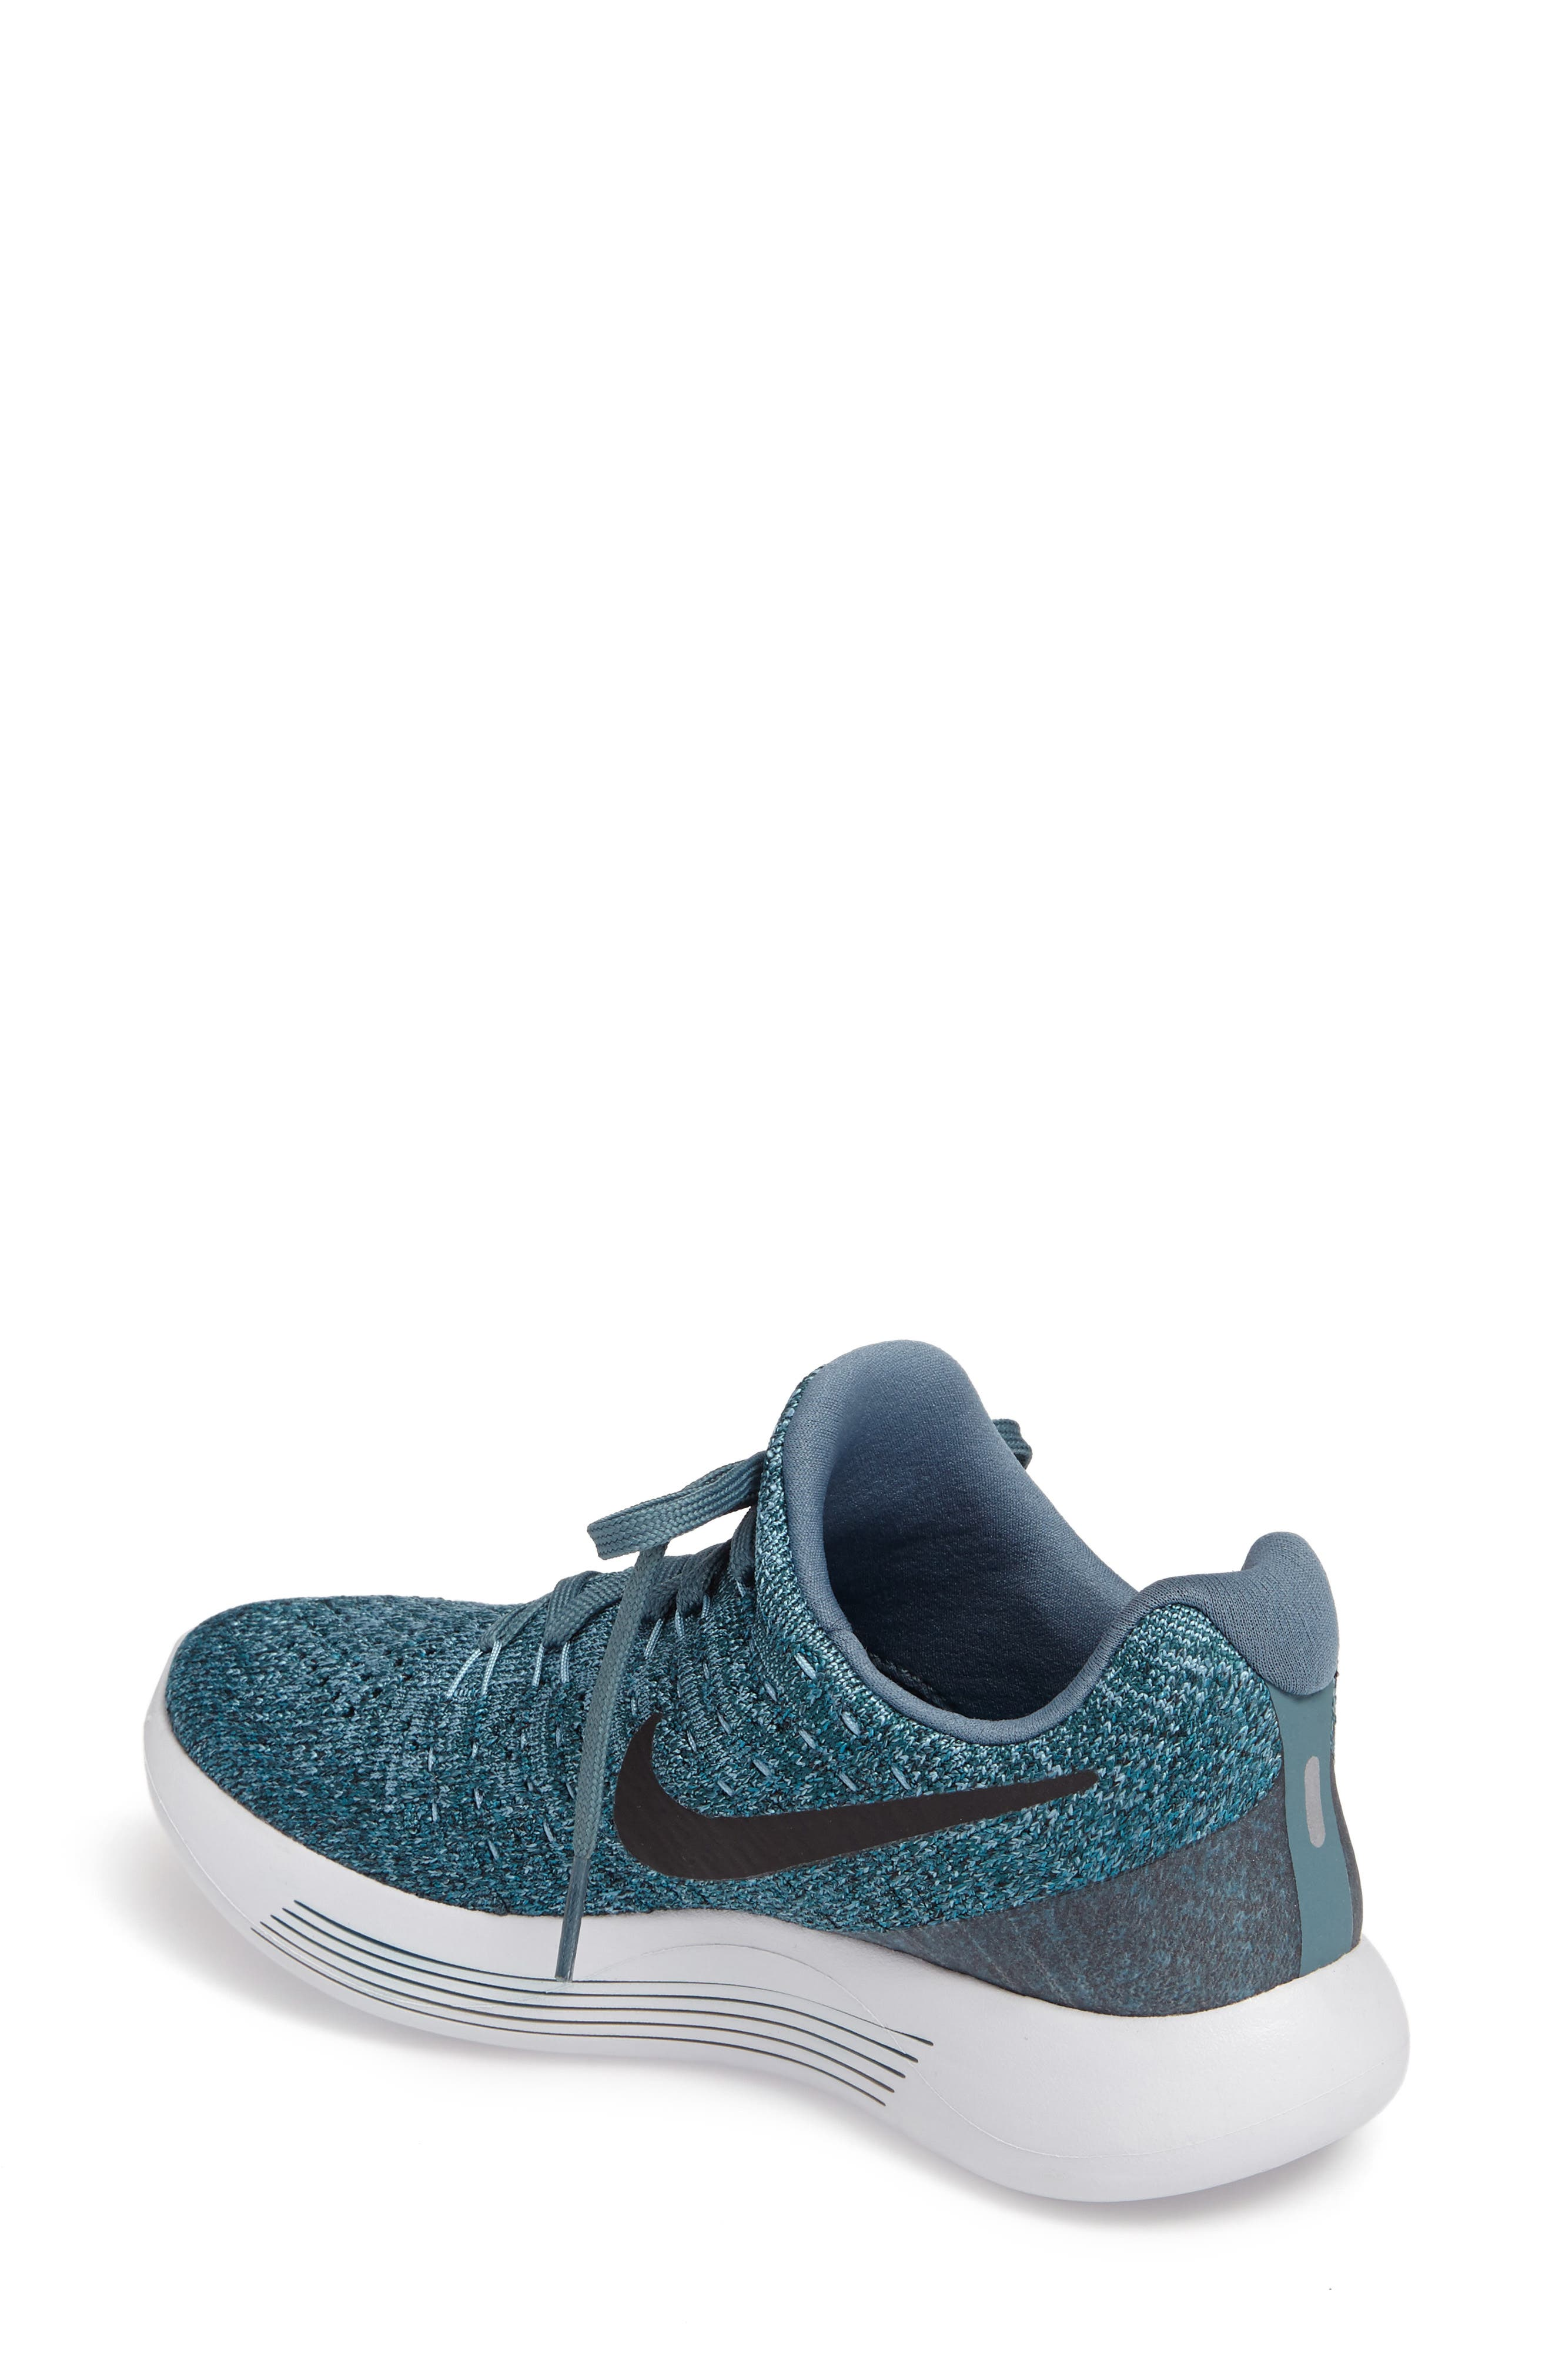 ,                             LunarEpic Low Flyknit 2 Running Shoe,                             Alternate thumbnail 80, color,                             413